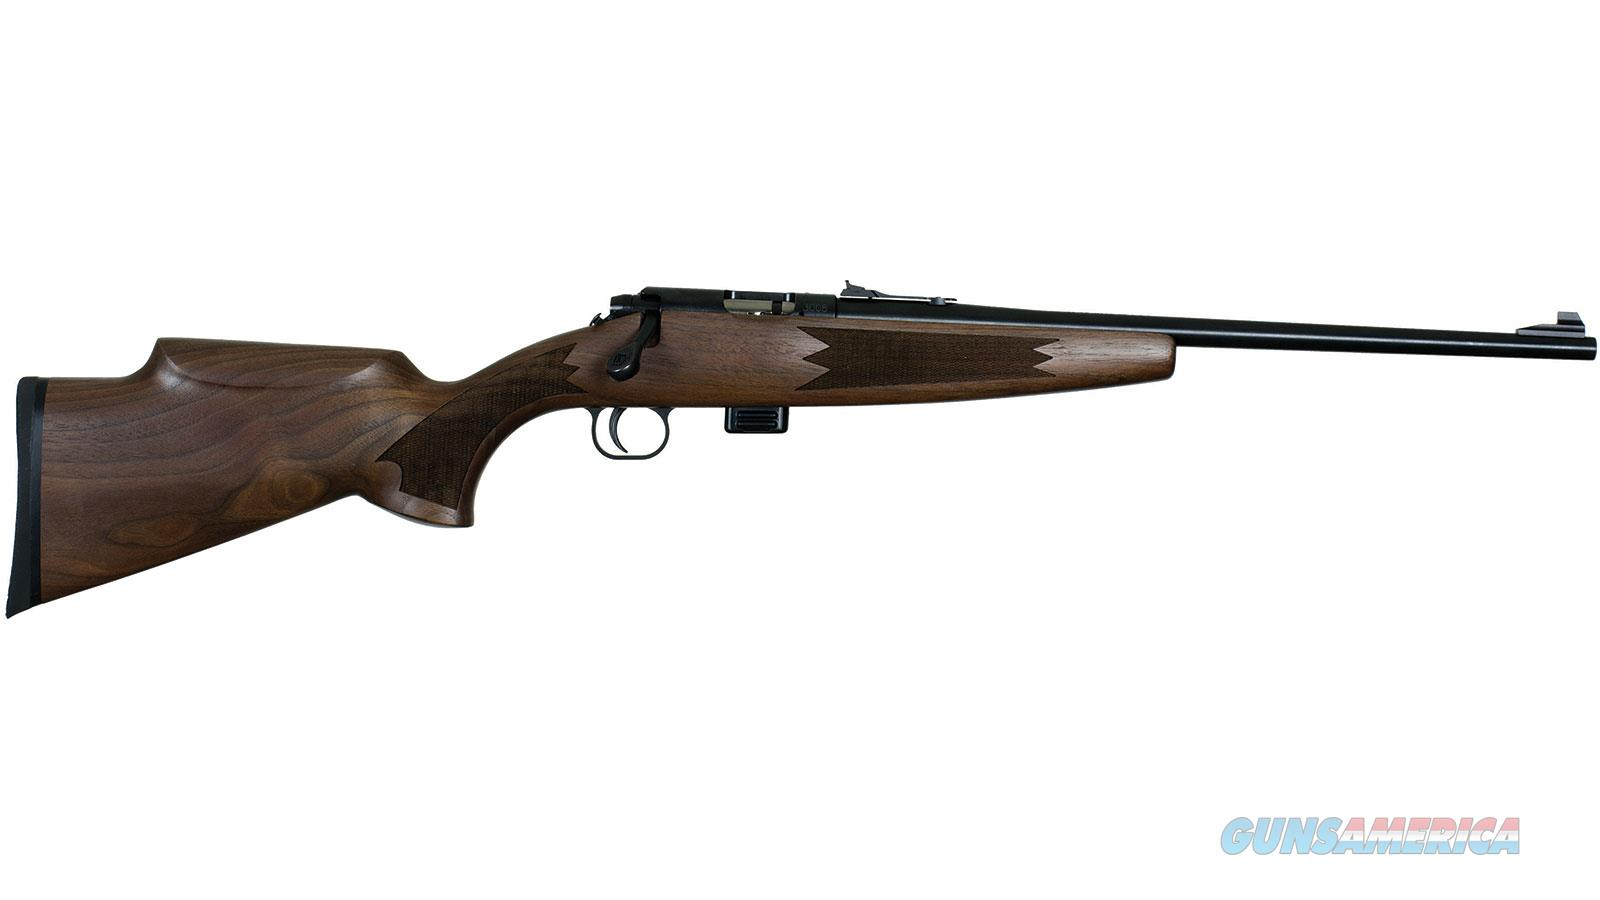 Keystone 722 22Lr Cpt Walnut Deluxe KSA20410  Guns > Rifles > D Misc Rifles